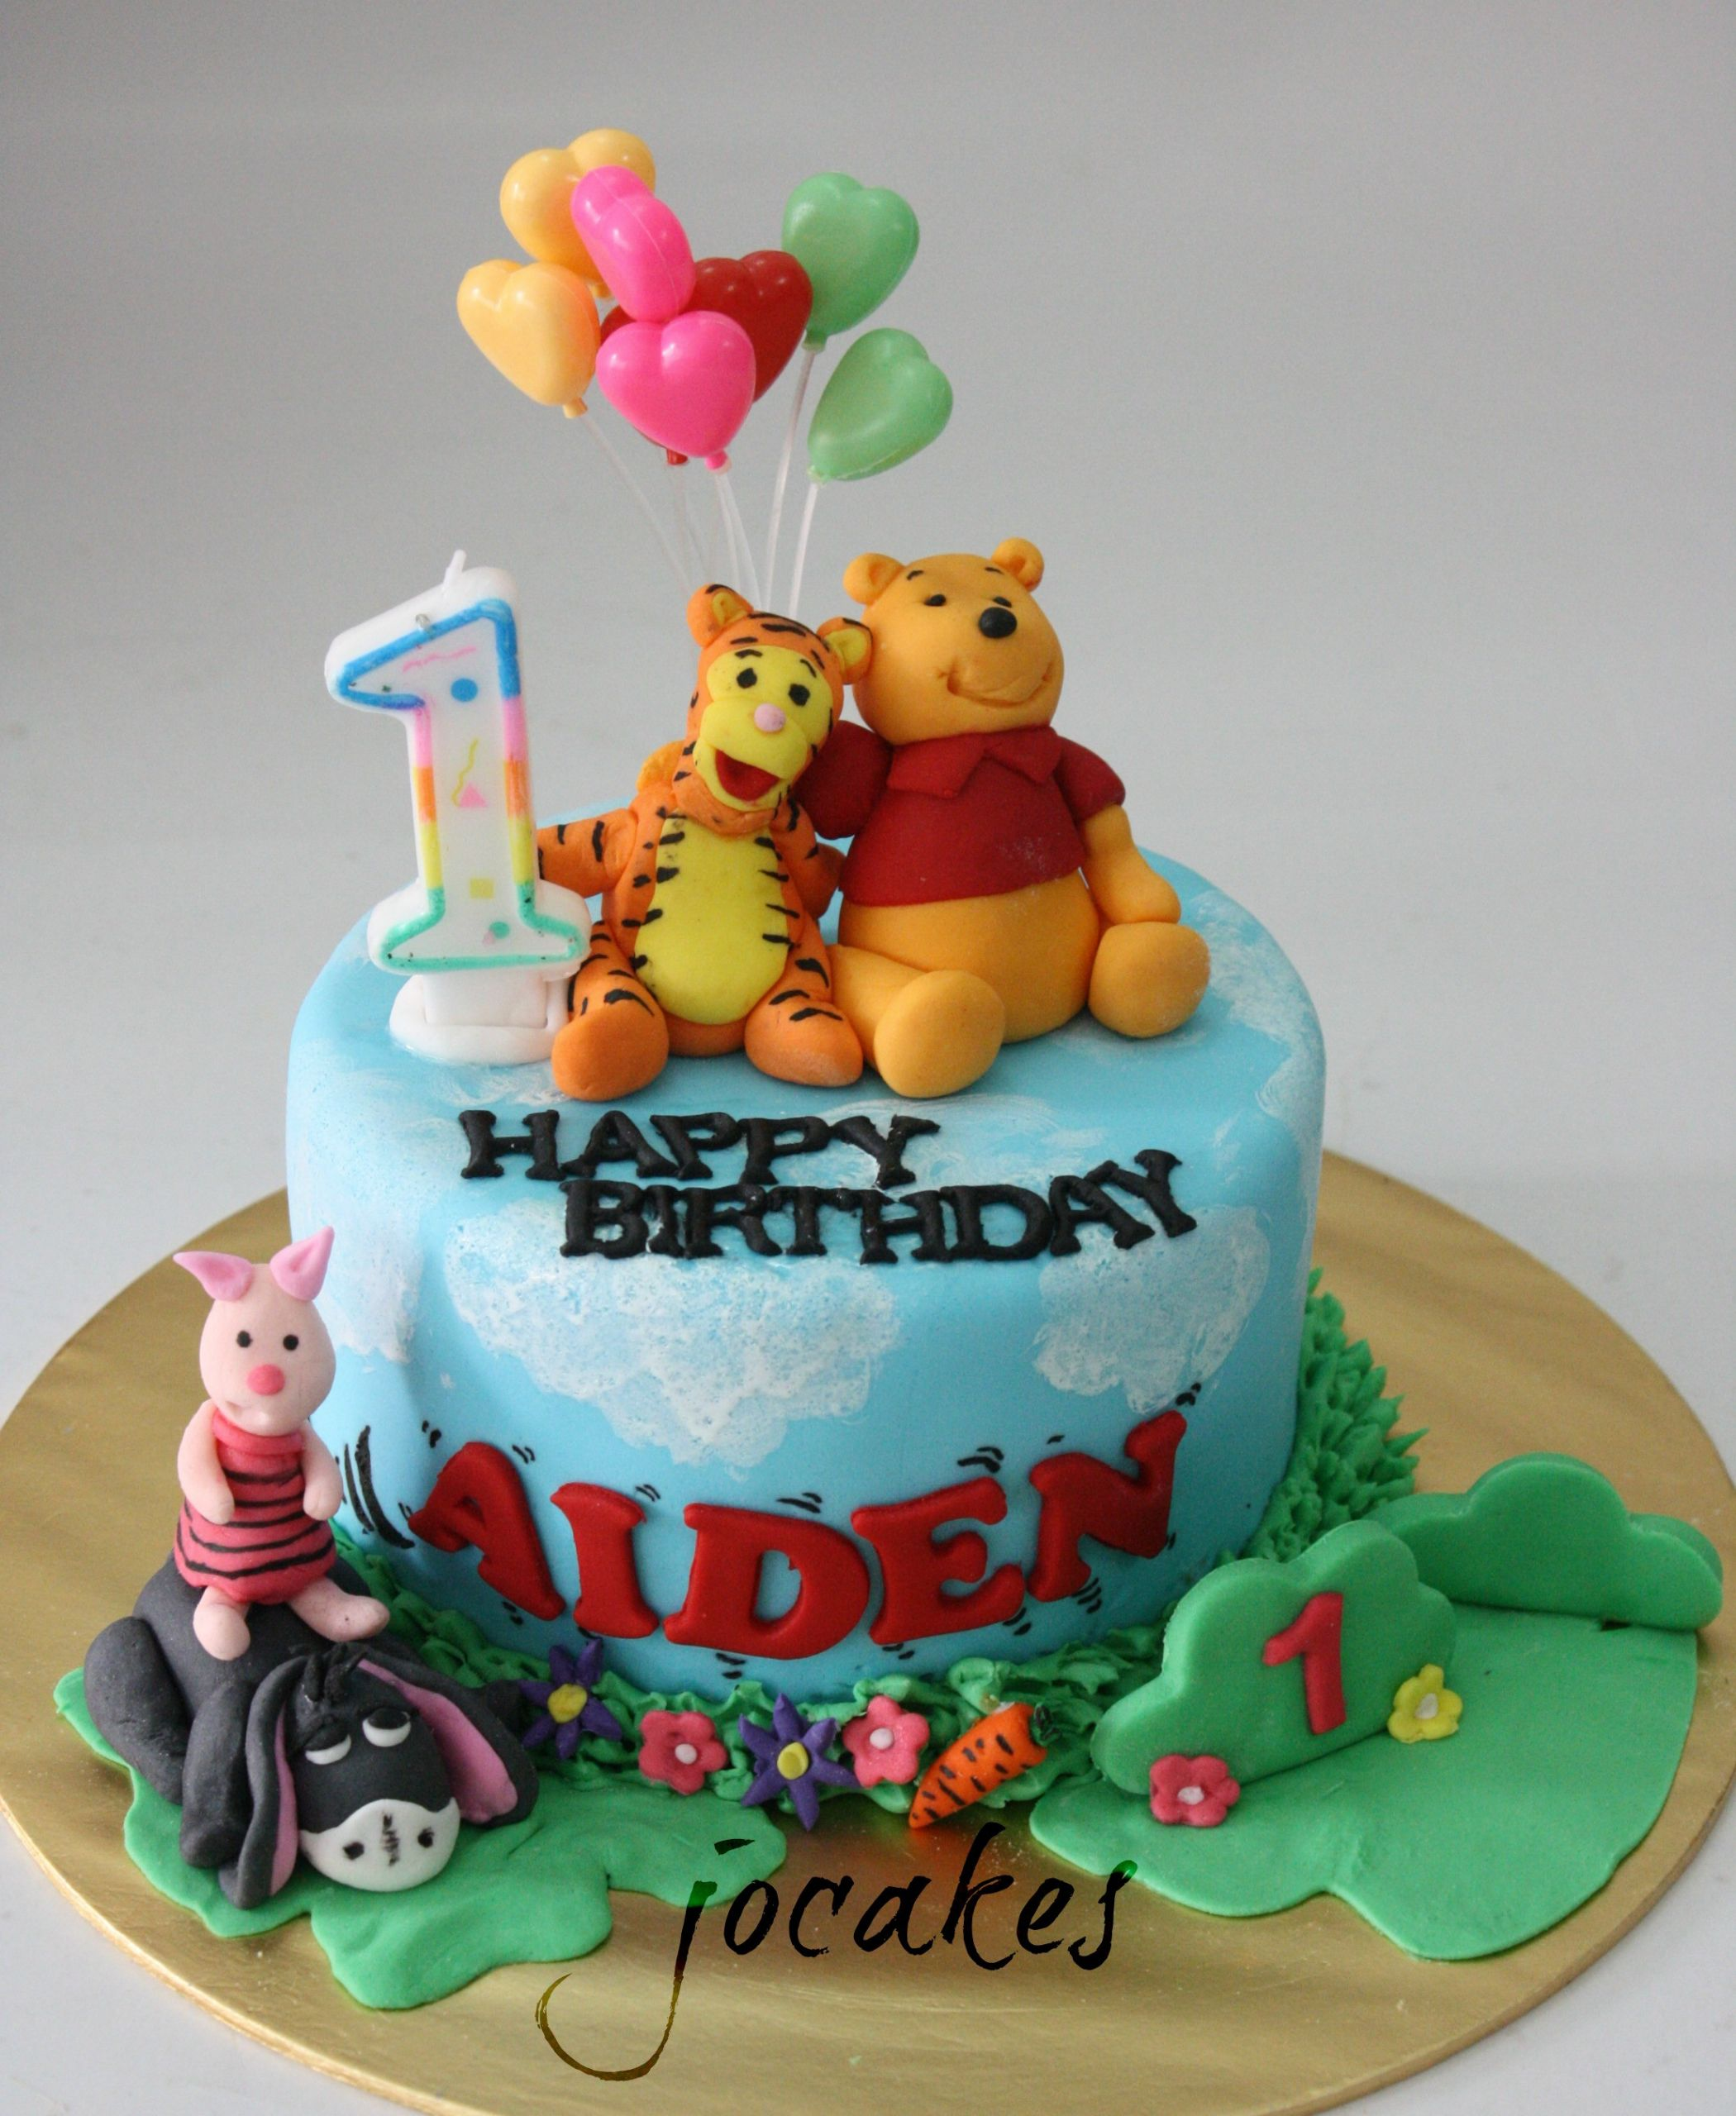 Birthday Cake For 1 Year Old  Winnie the Pooh and friends cake for 1 year old boy Aiden